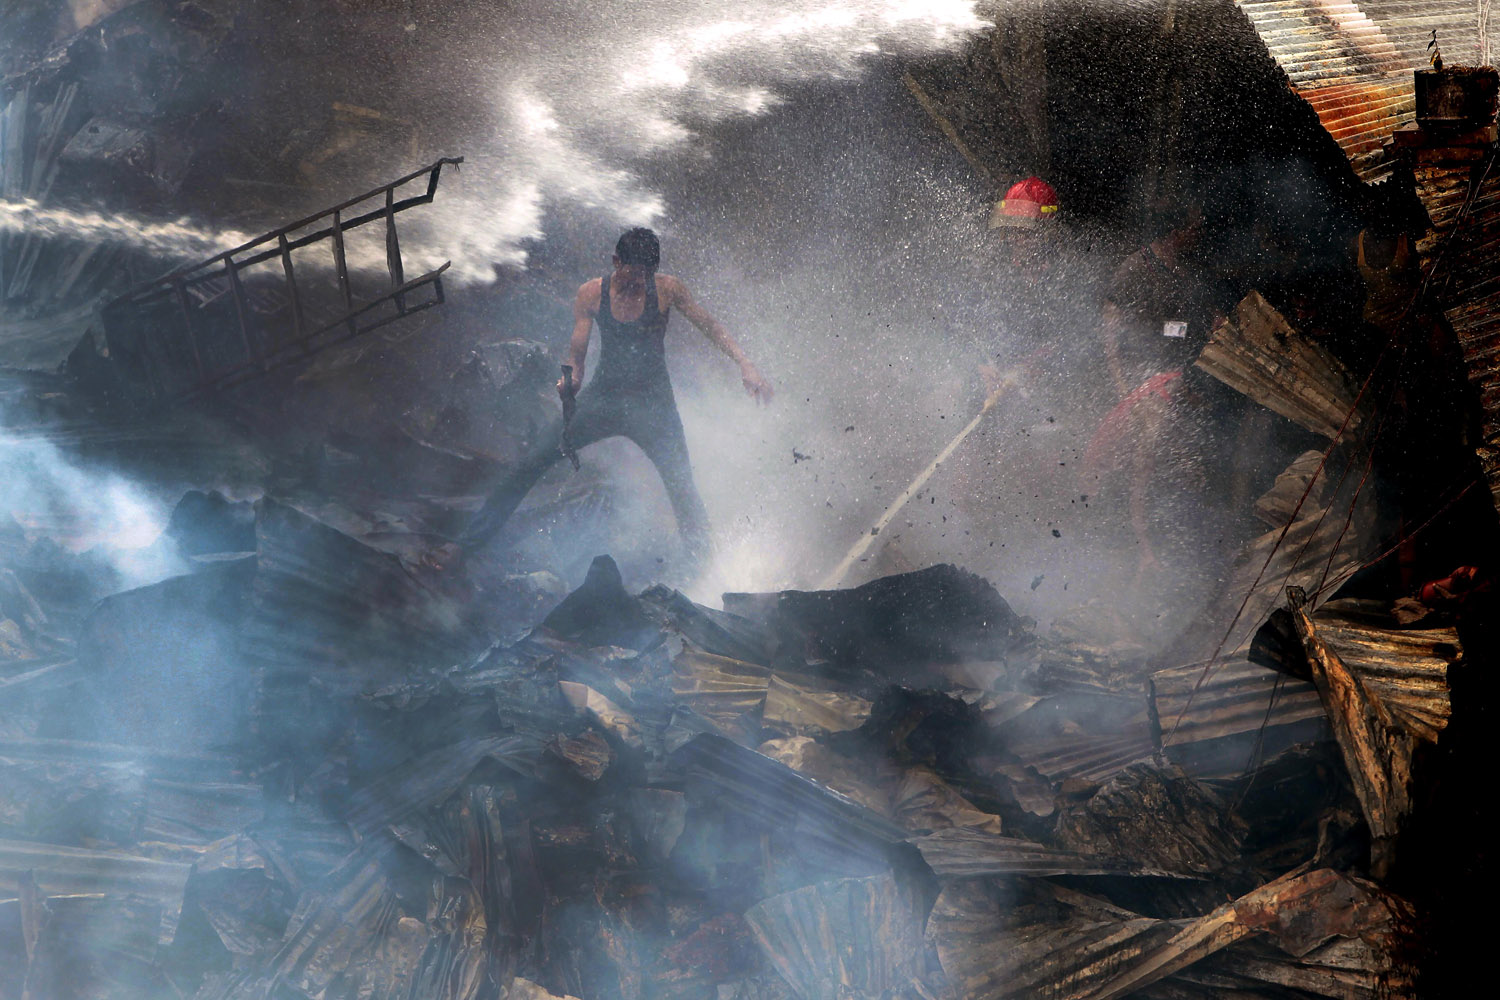 Sept. 20, 2012. Bangladeshi firefighters and residents try to control a fire in the Begunbari slum in Dhaka, Bangladesh.